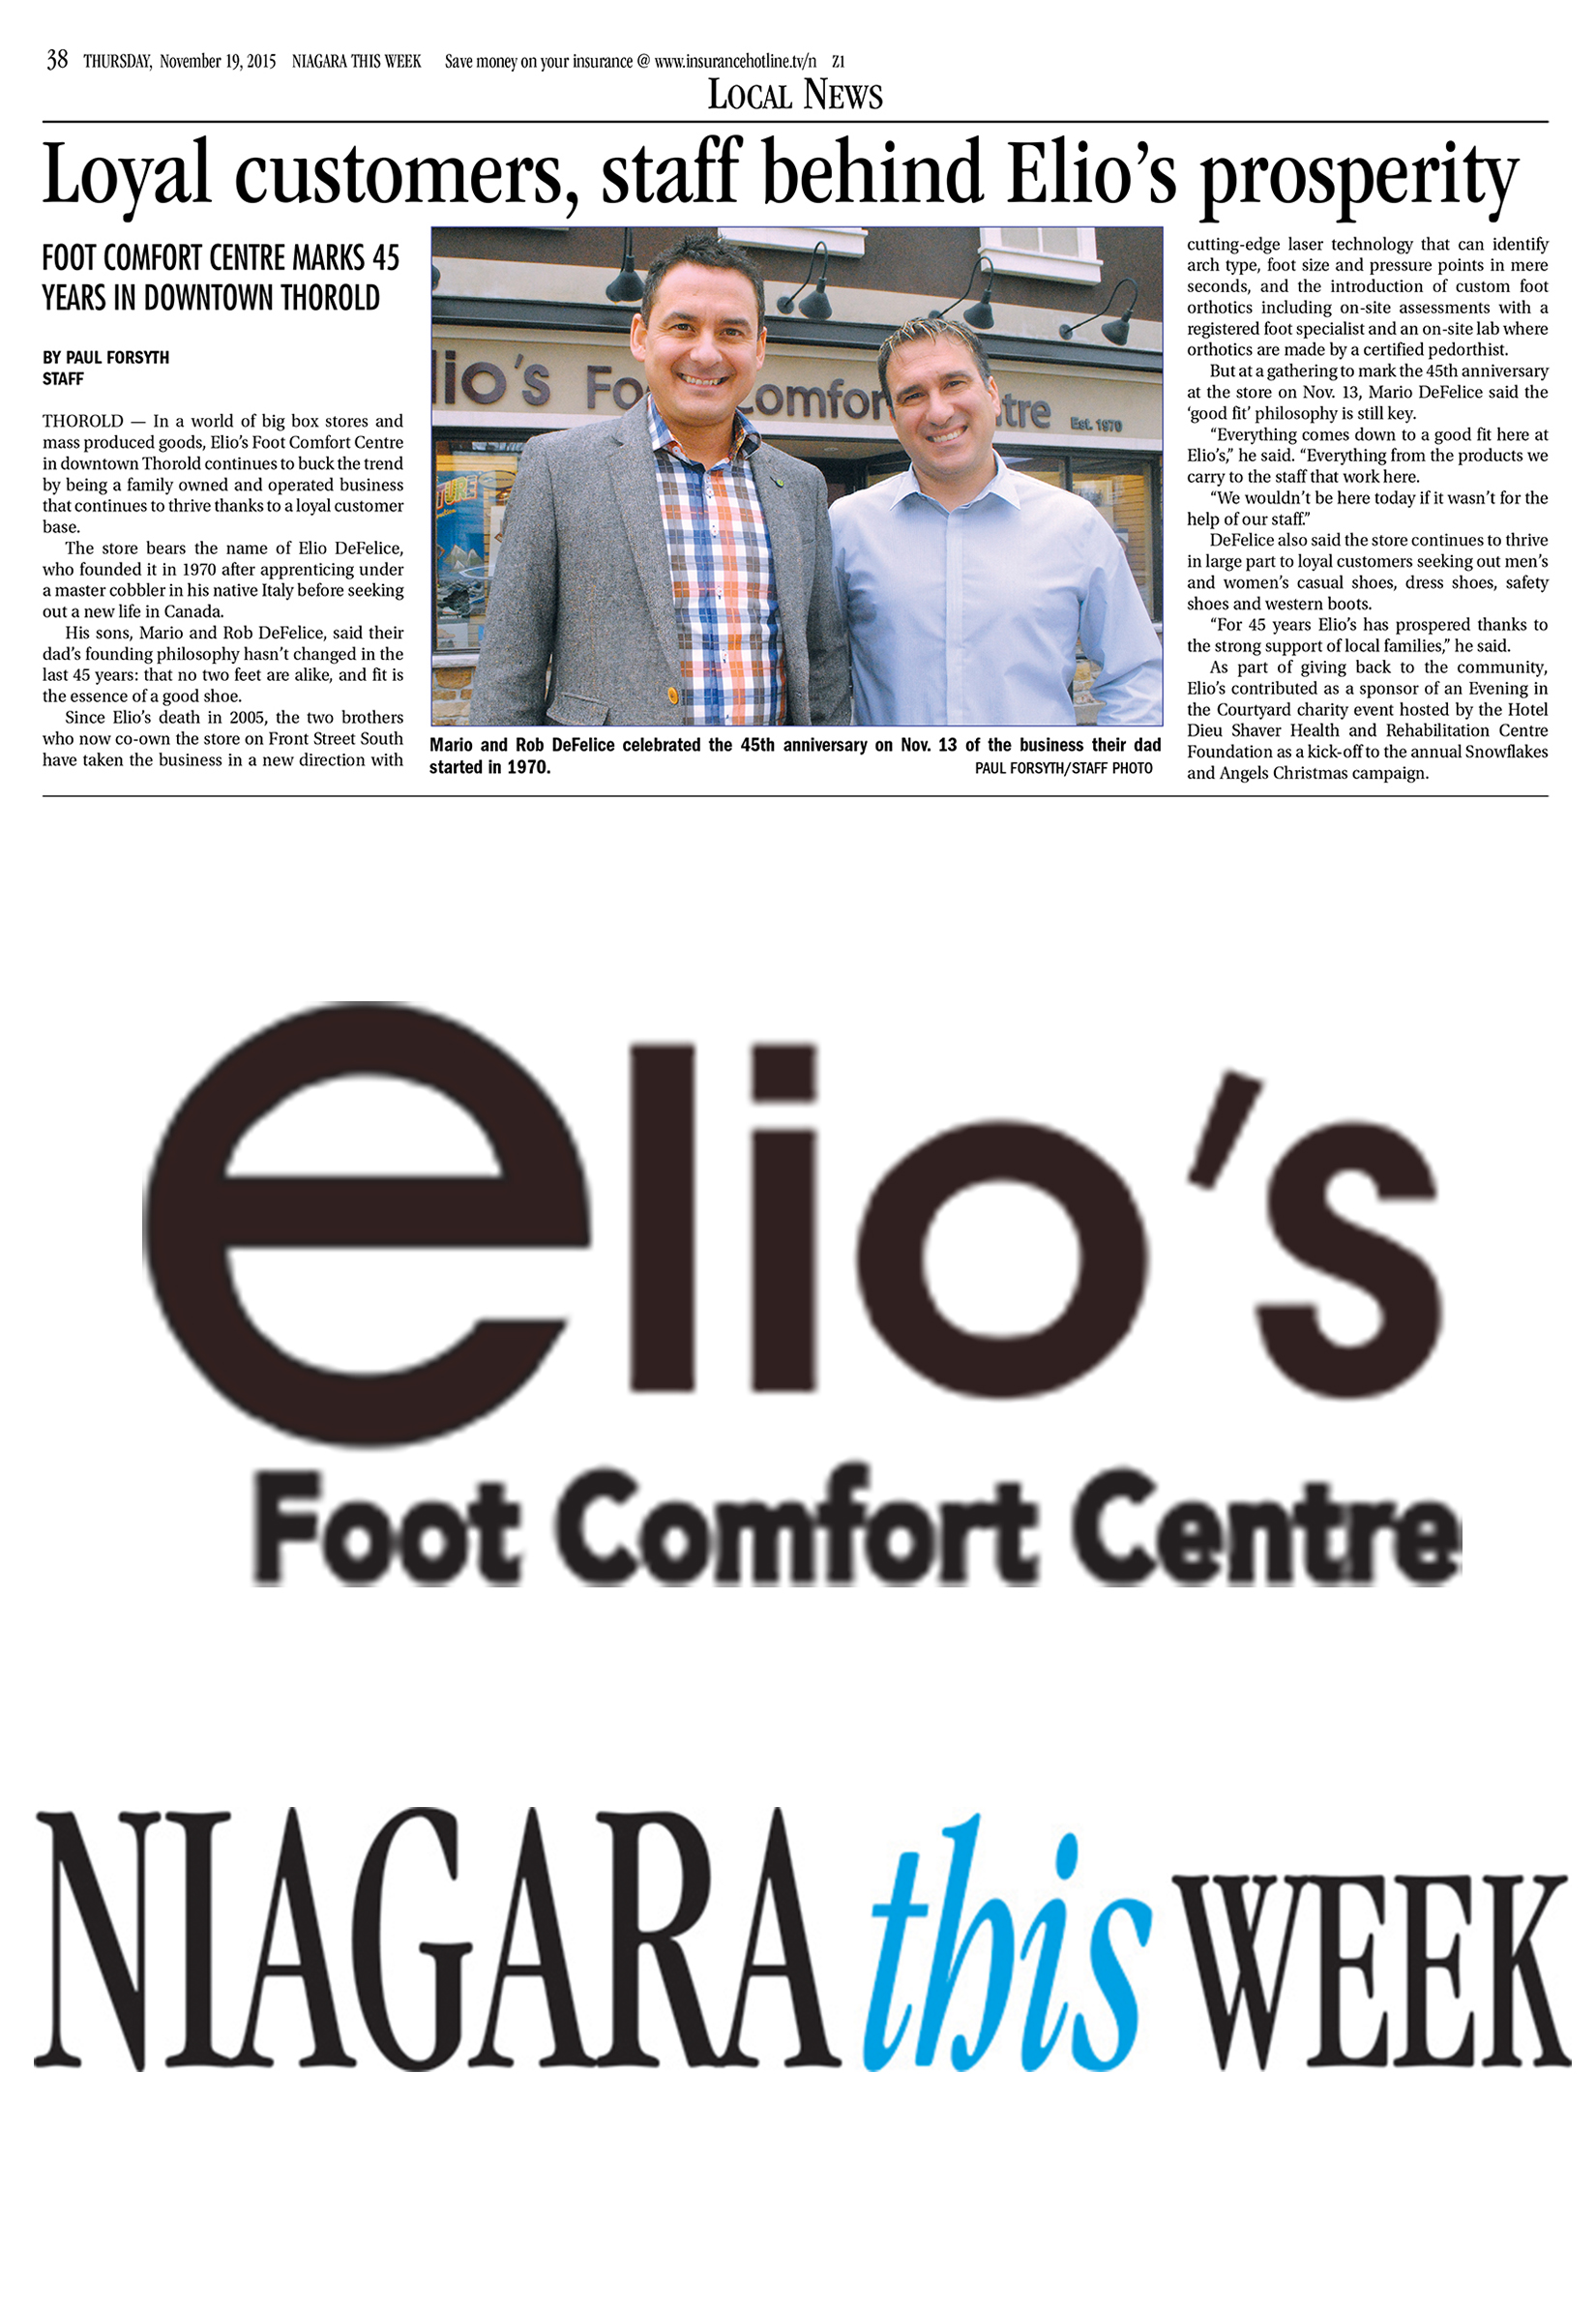 Loyal customers, staff behind Elio's prosperity